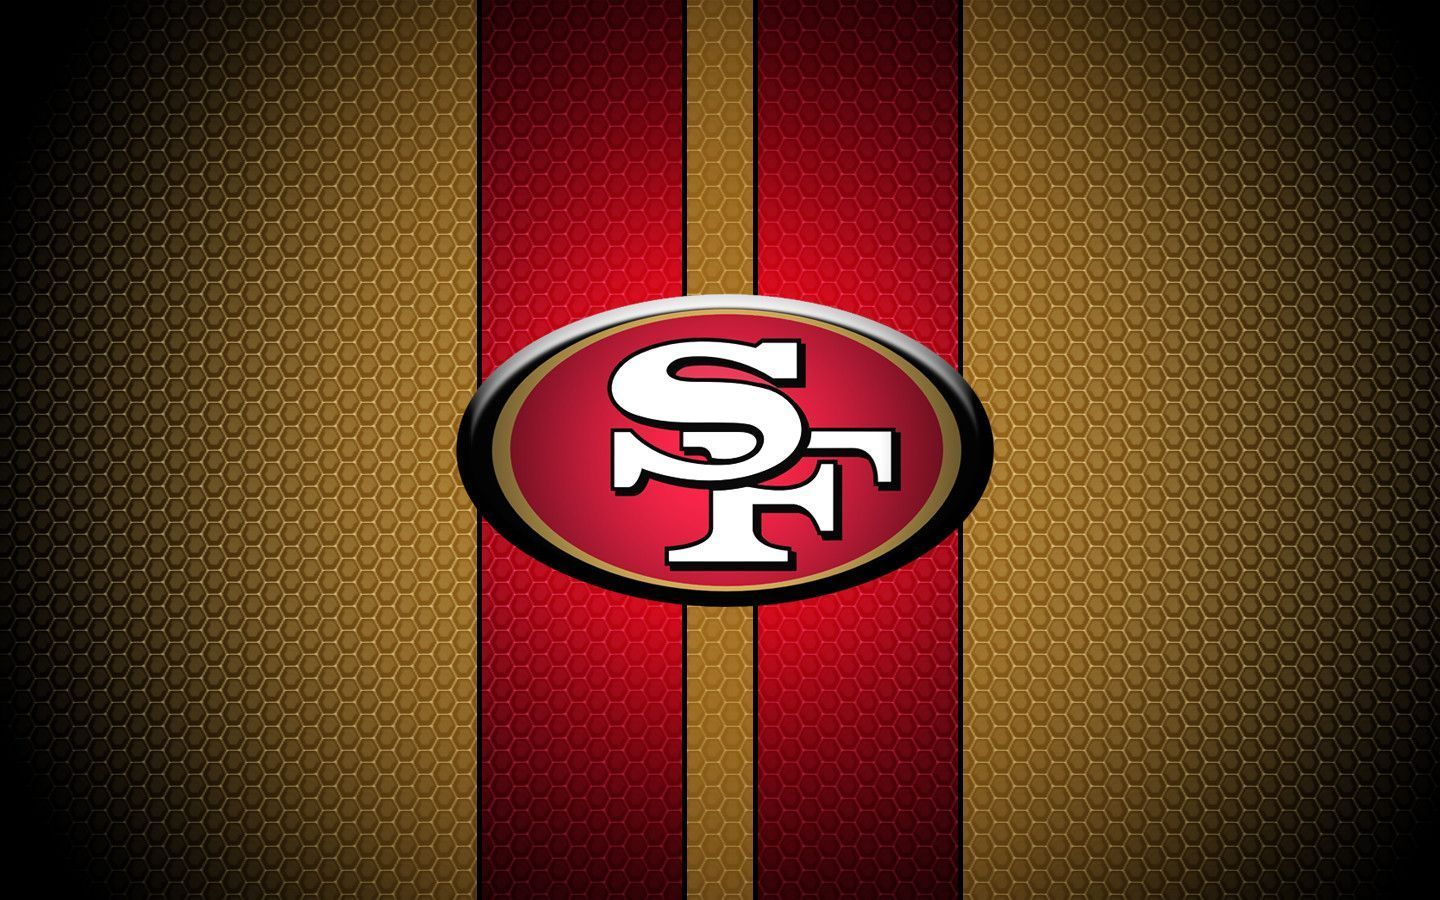 Free 49ers Wallpapers Your Phone Wallpaper Cave San Francisco 49ers Nfl Football Wallpaper San Francisco 49ers Logo